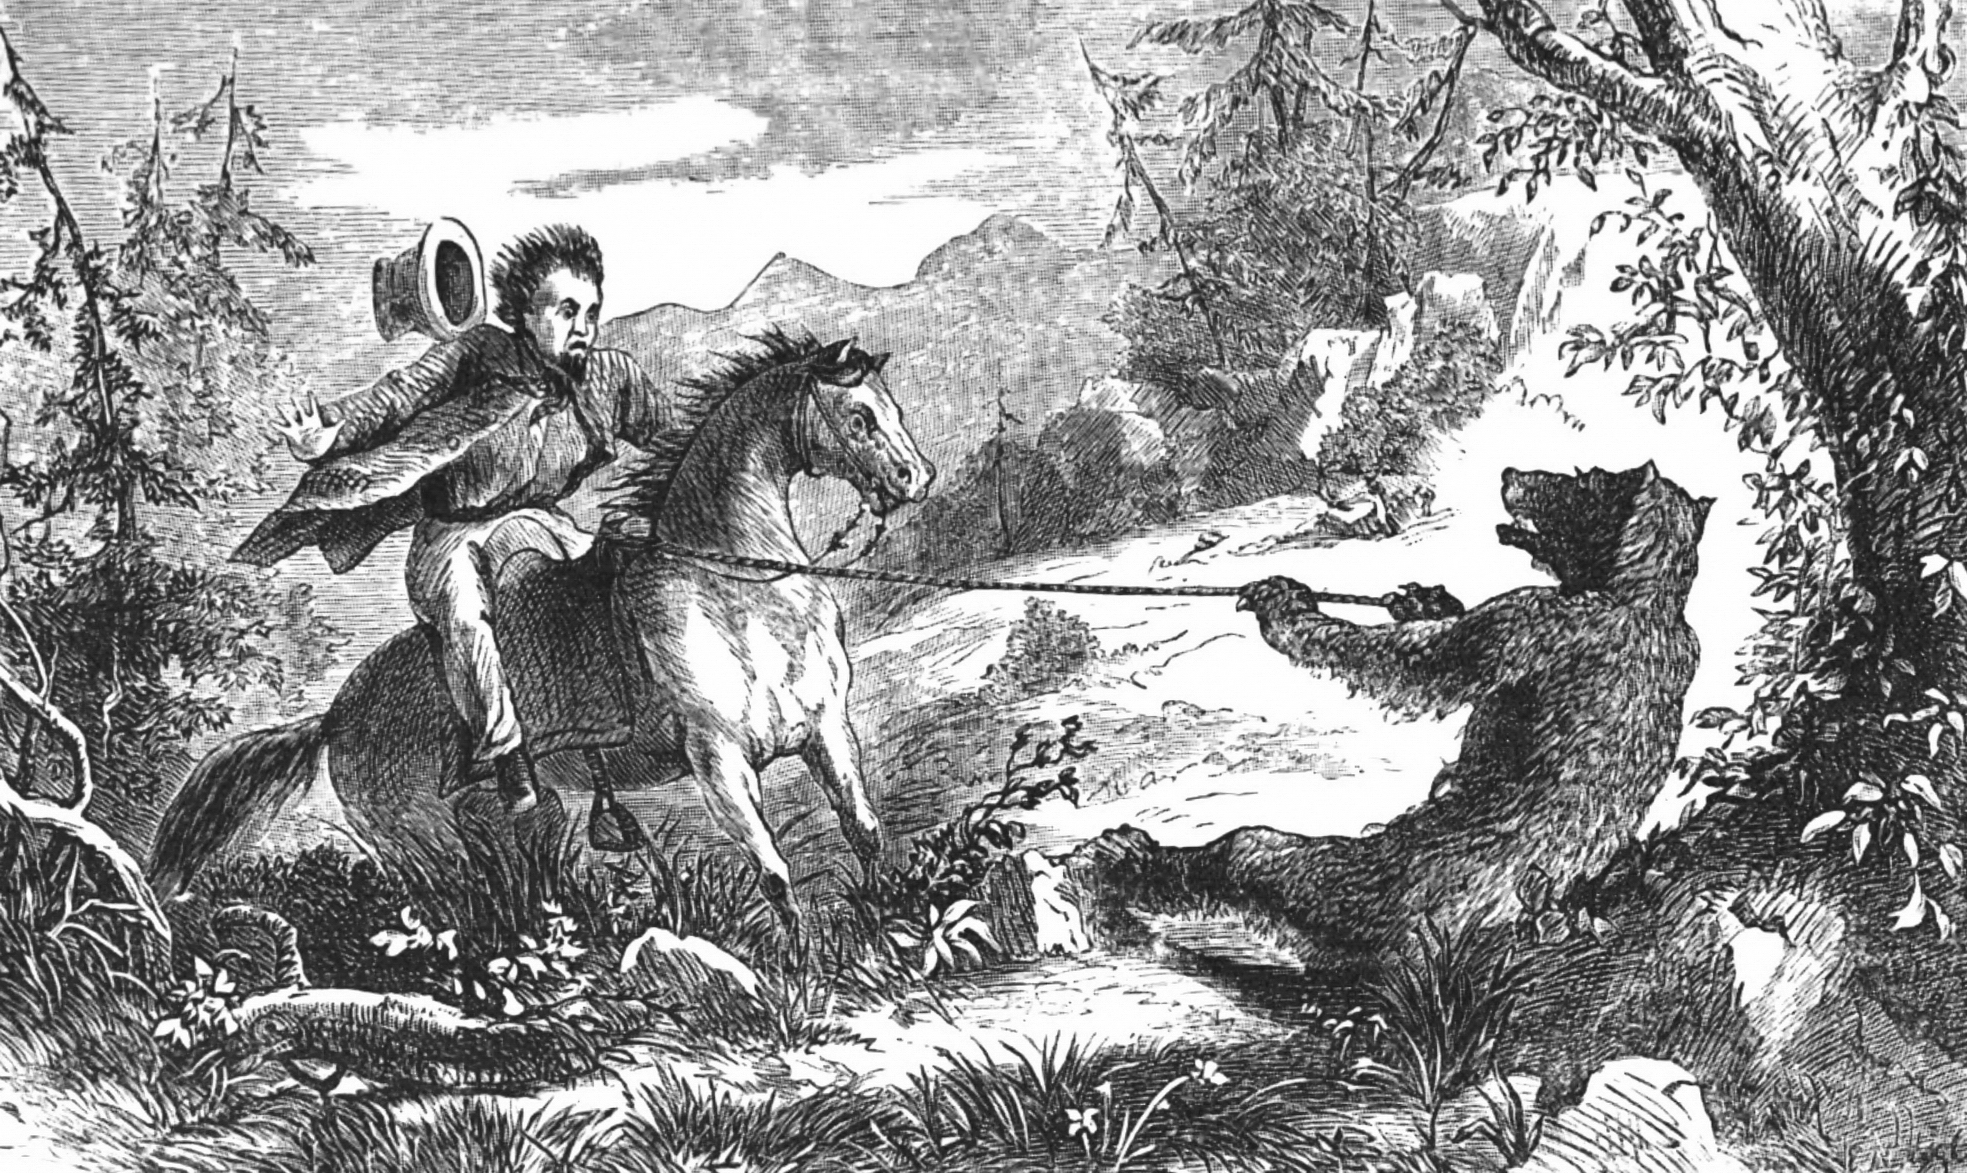 "One man told a story about a grizzly bear with enough strength to drag him and his horse. Ernest Narjot, ""The Pull on the Wrong Side"" from   A la California: Sketches of Life in the Golden State     by Albert S. Evans (San Francisco: A. L. Bancroft, 1873)."